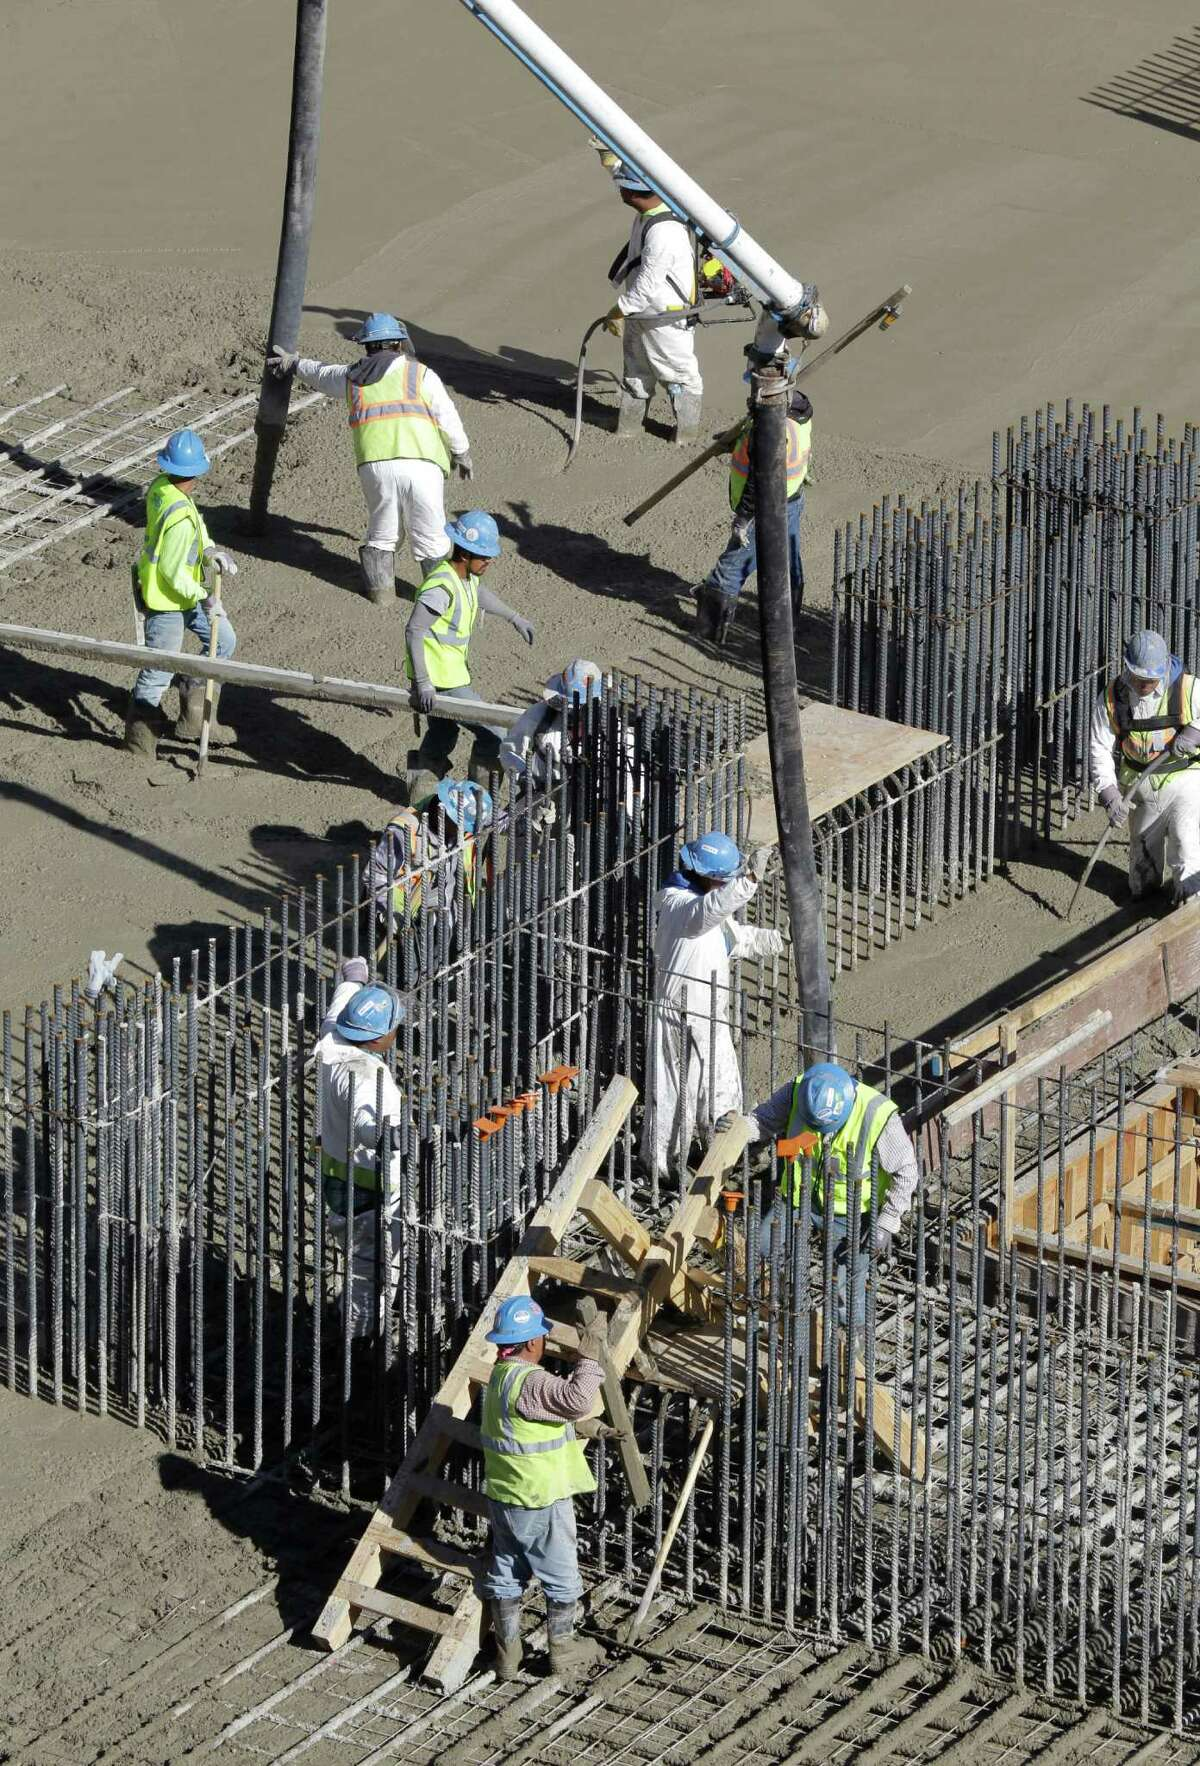 Our region faces unprecedented workforce challenges in finding the manpower to build and maintain an expected $350 billion in future construction projects. It is simply not possible for our existing workforce to come anywhere close to filling the need.